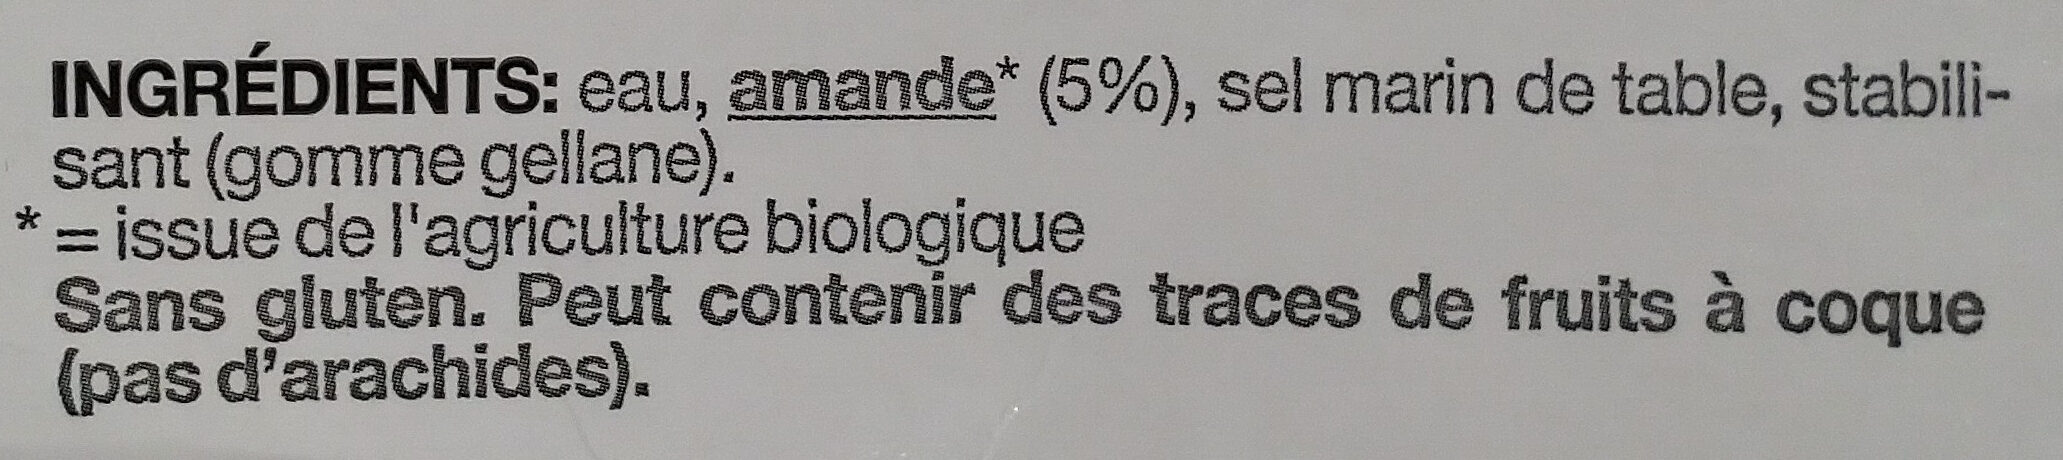 Amande. Sans sucres. - Ingredients - fr